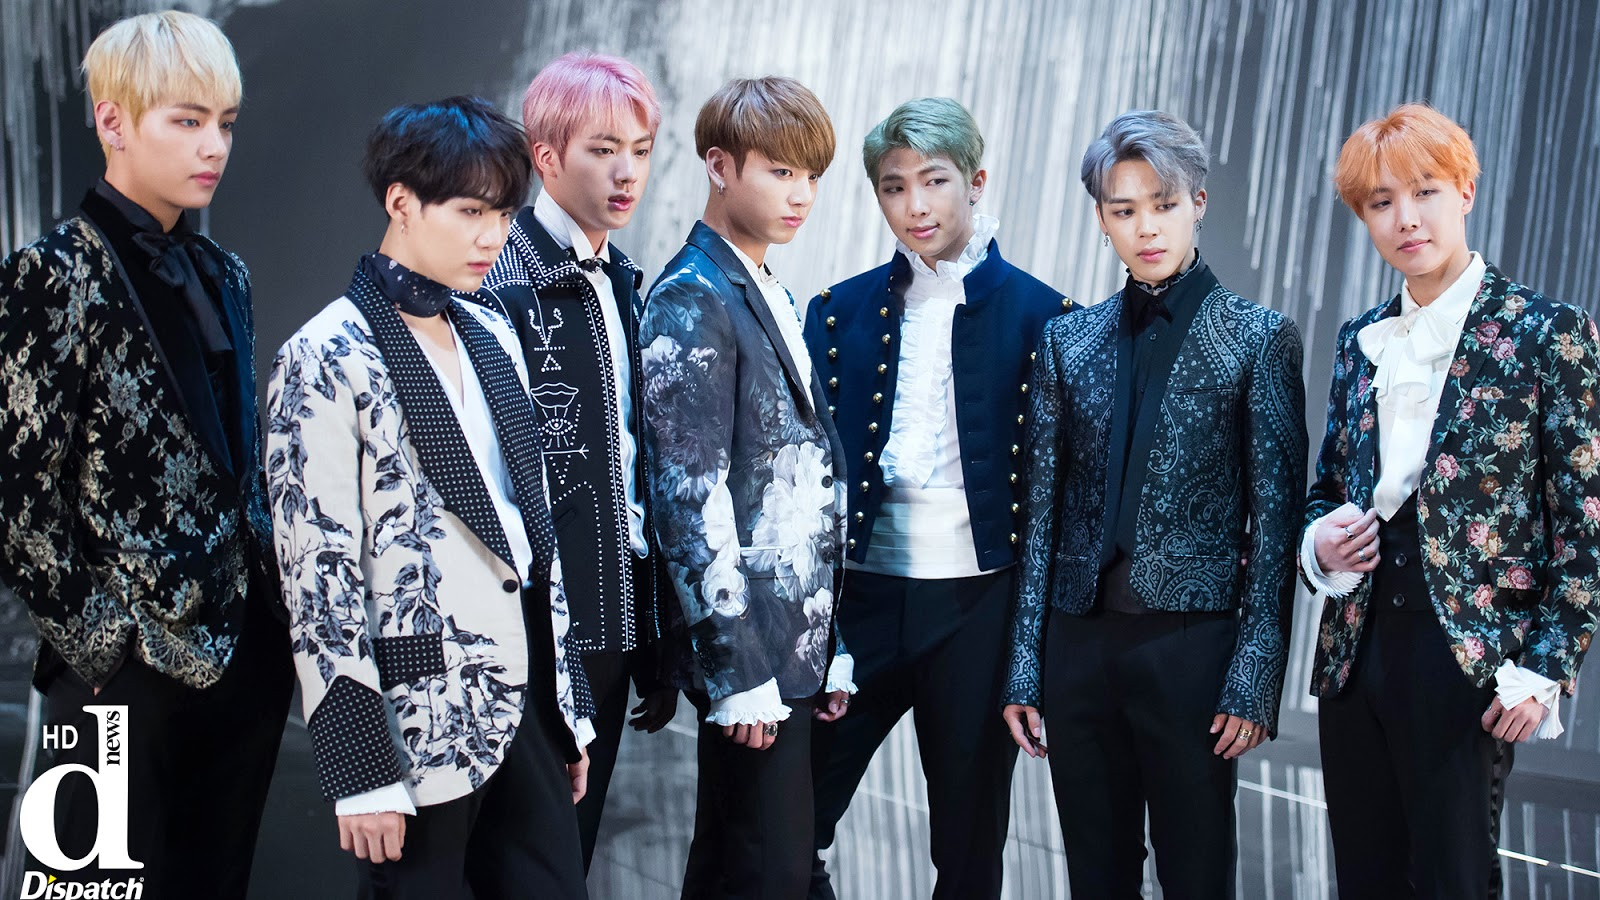 bts wallpapers%2B%25281%2529